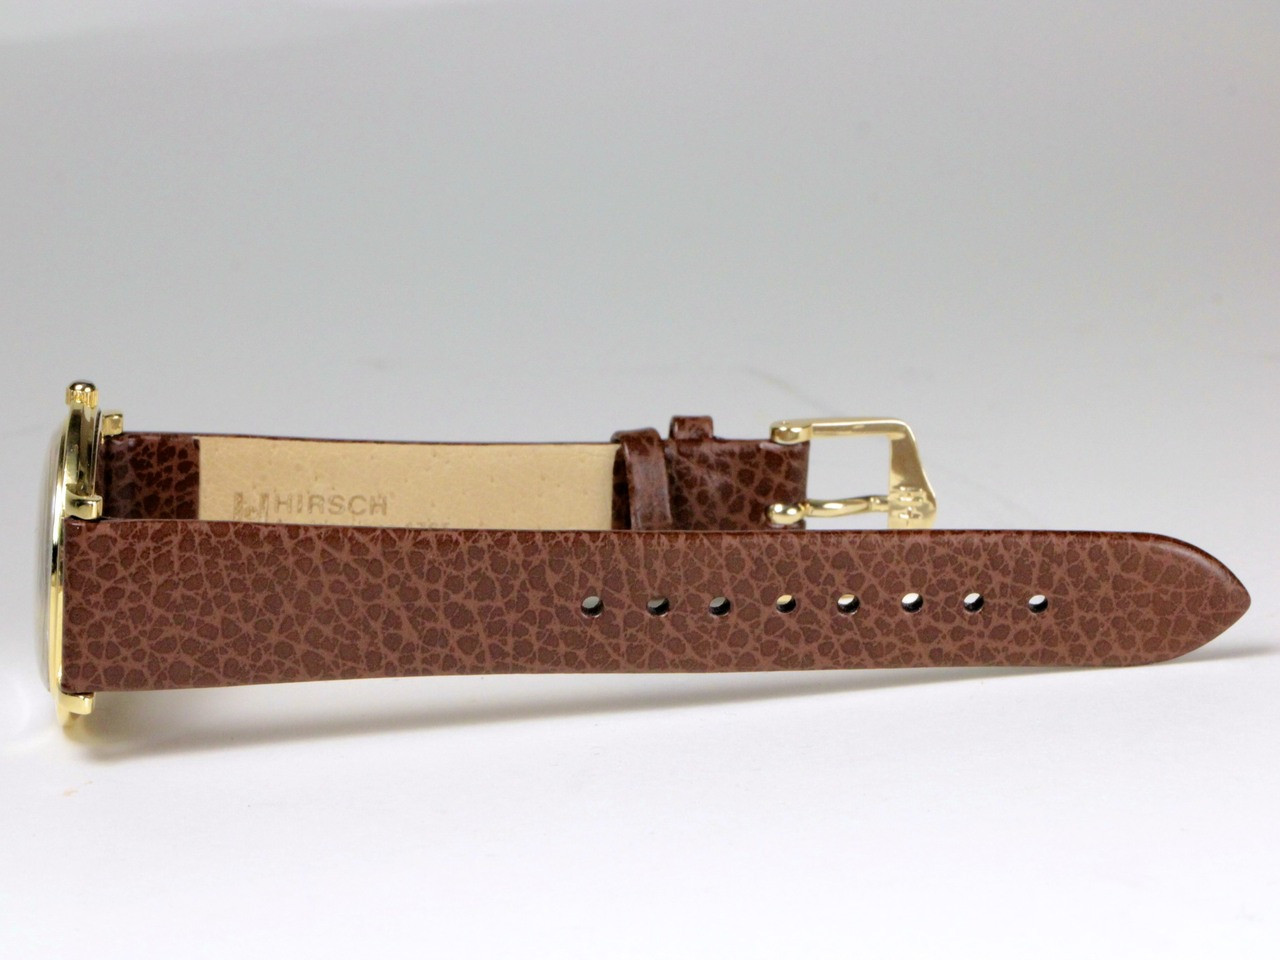 Replacement Brown Leather Strap - Omega Watch - Vintage 18K Yellow Gold 14718 - www.Legendoftime.com - Chicago Watch Center